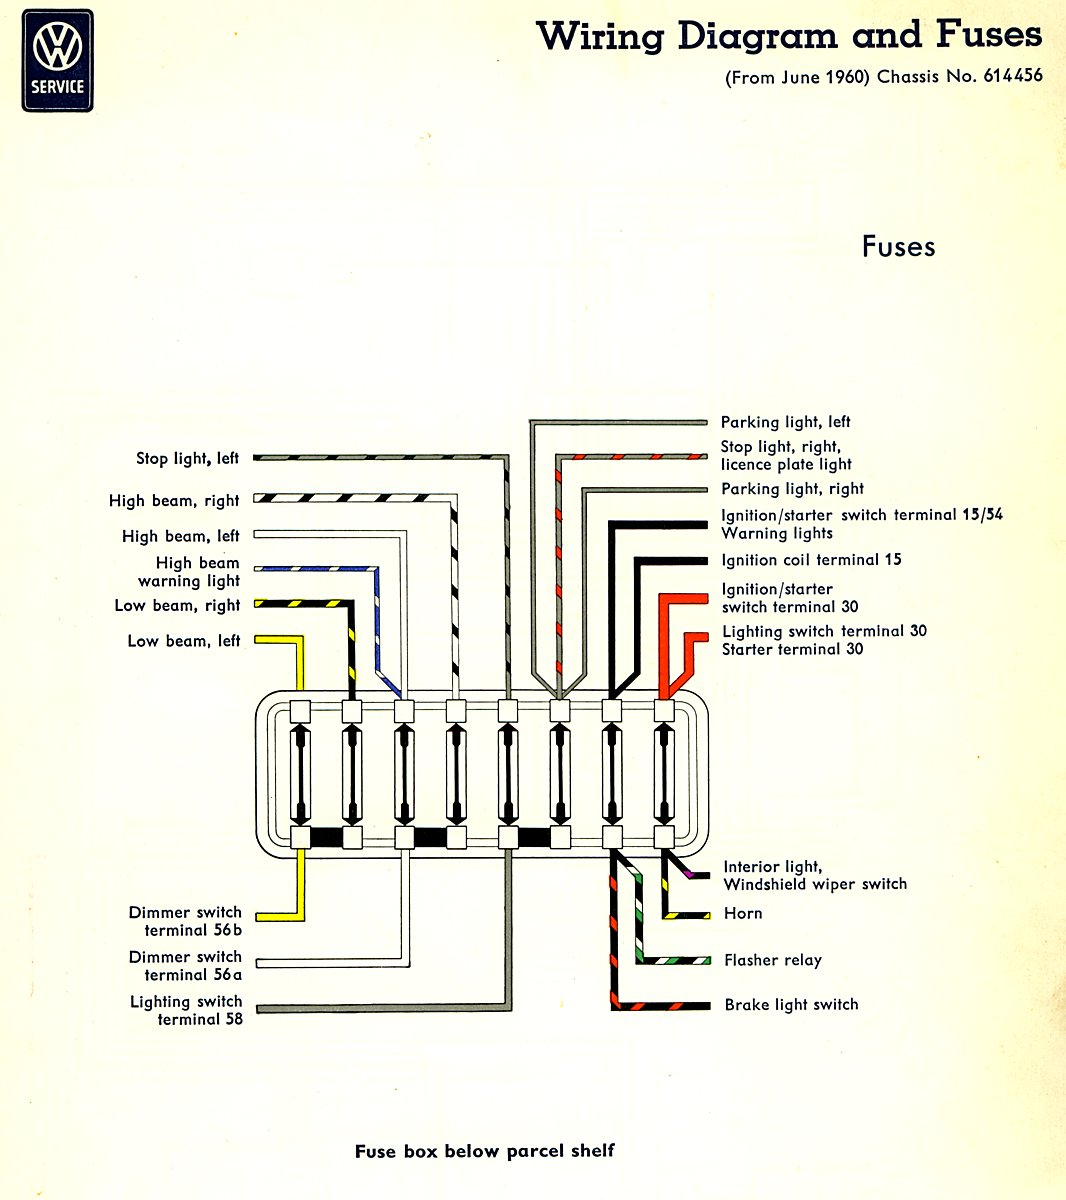 Type 2 Wiring Diagrams Tail Light Diagram 1964 1960 Fuse Box Insert 1961 Idiot Lights Highlight